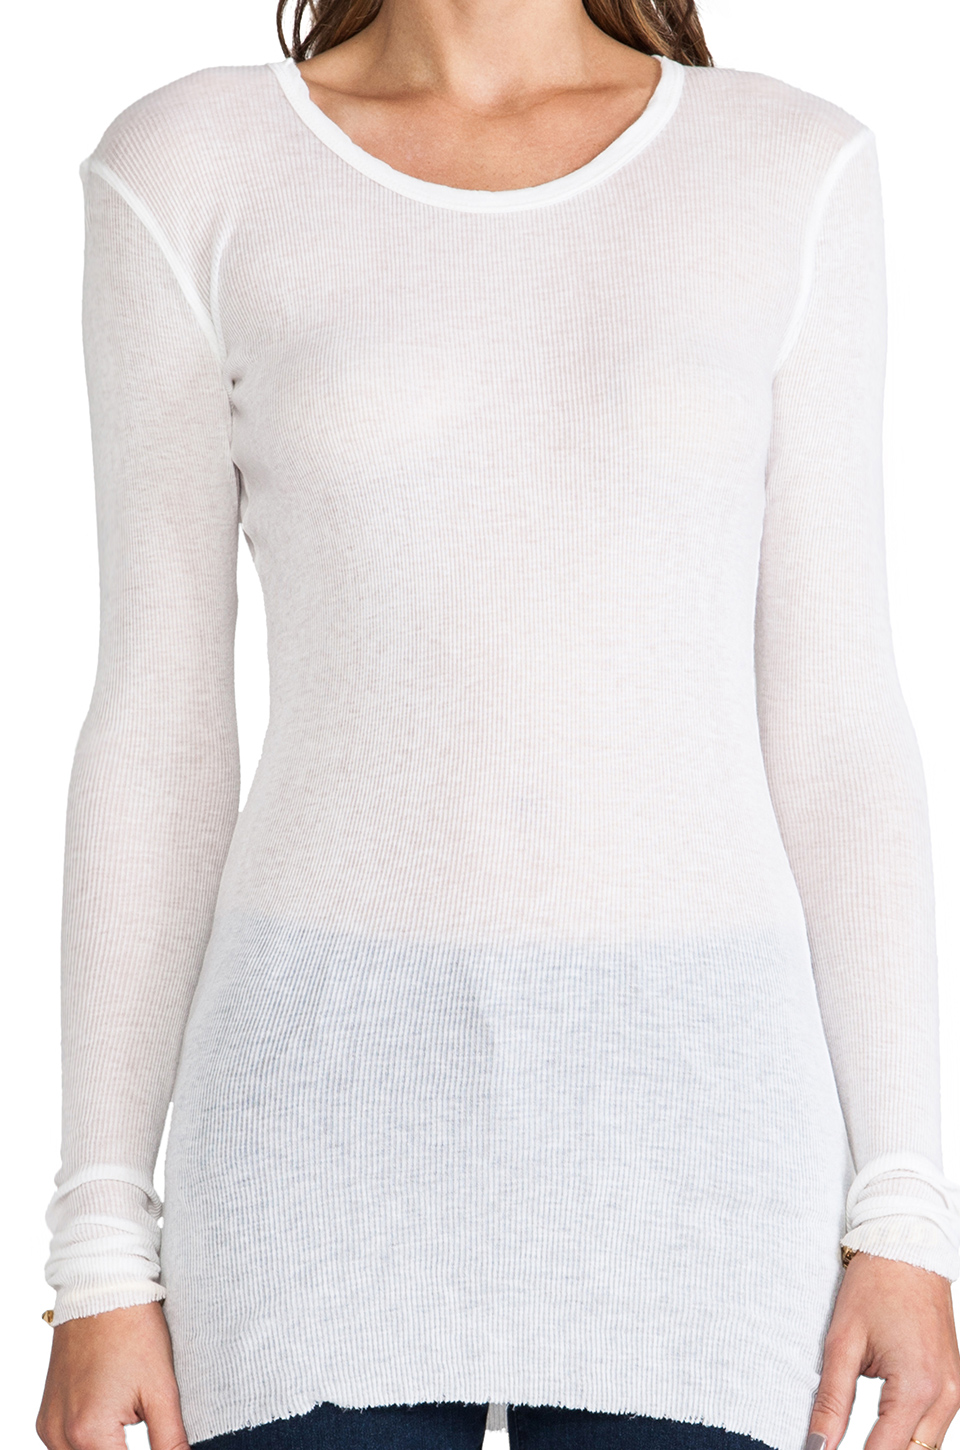 James Perse Cashmere Rib Long Sleeve Crew in White